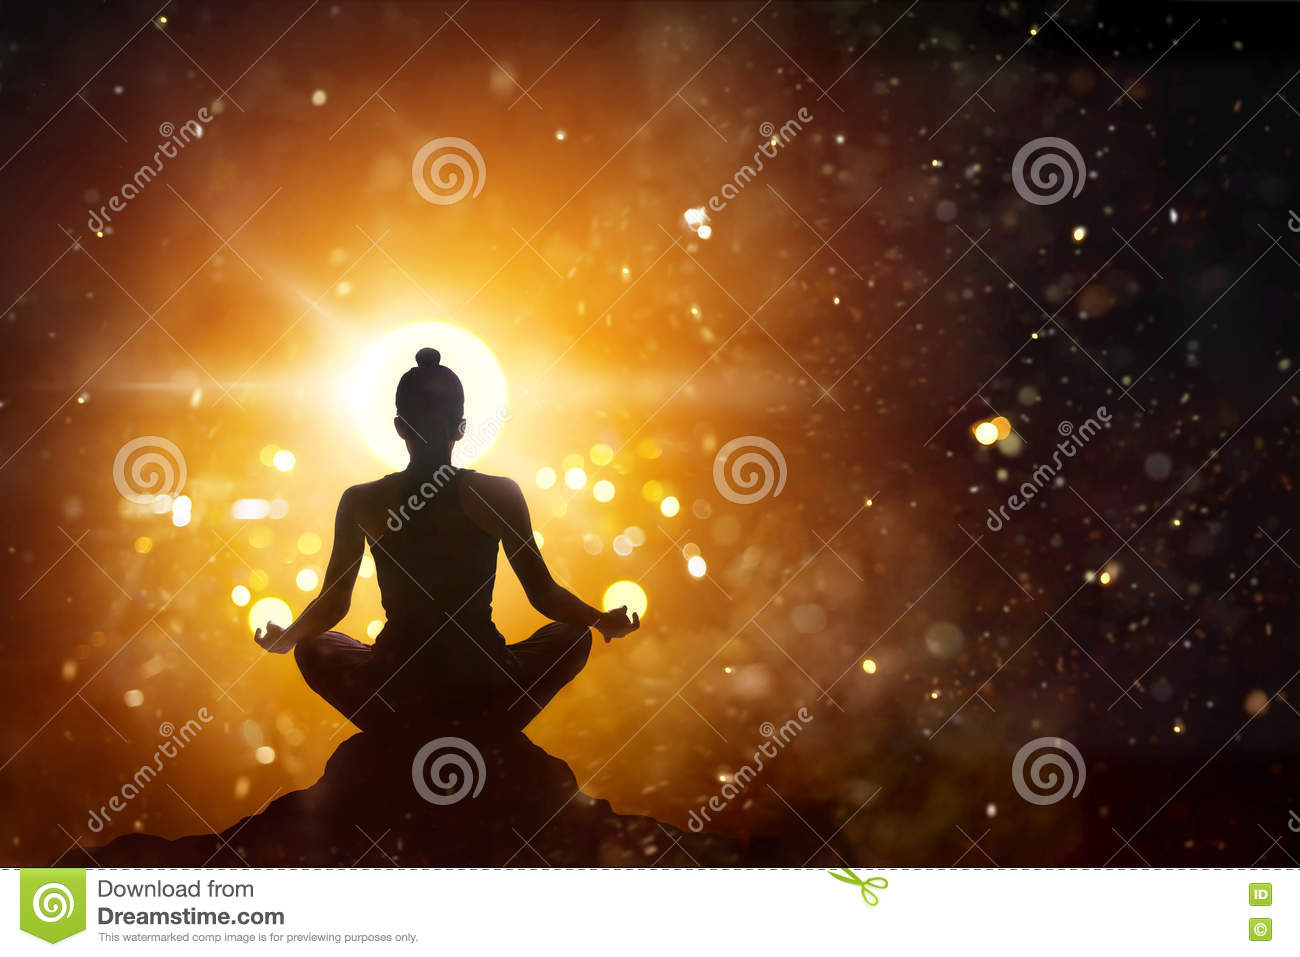 Woman meditating in lotus pose yoga with abstract background